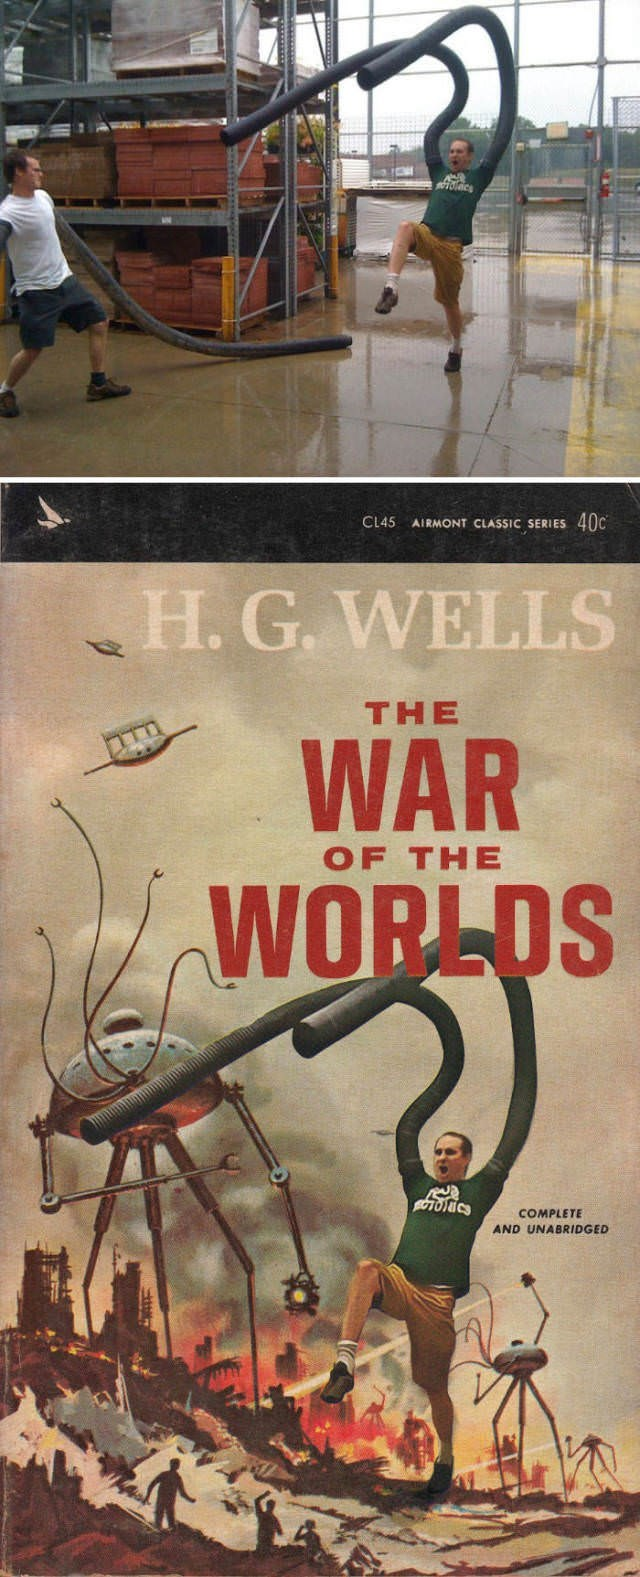 Text - AIRMONT CLASSIC SERIES 40C CL45 H. G. WELLS THE WAR OF THE WORLDS BOTOICS COMPLETE AND UNABRIDGED